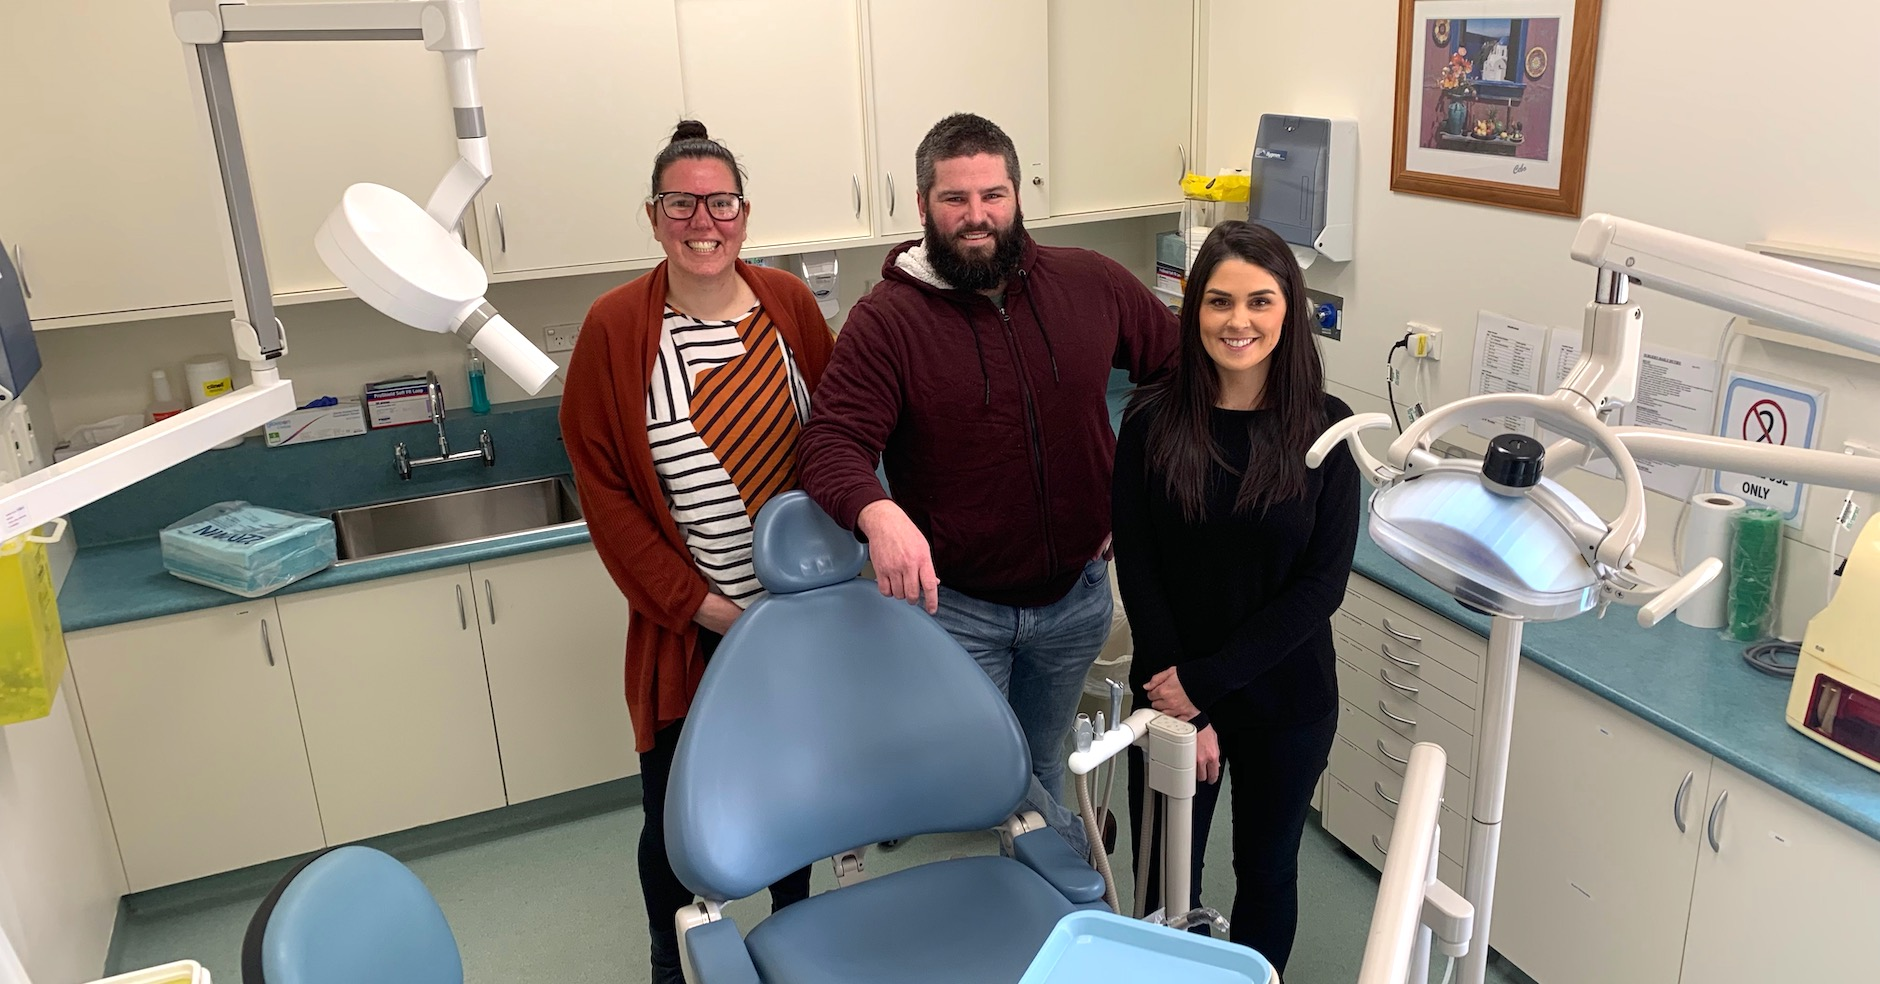 TDHS Barlow Dental Group